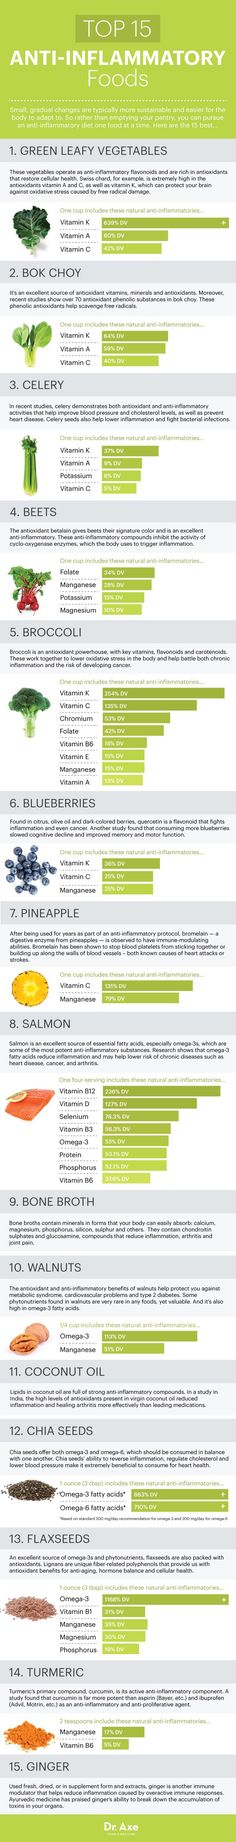 Top anti-inflammatory foods by Dr. Axe | Natural Remedies | Holistic | Food Facts | Wellness Tips | Health Infographic |